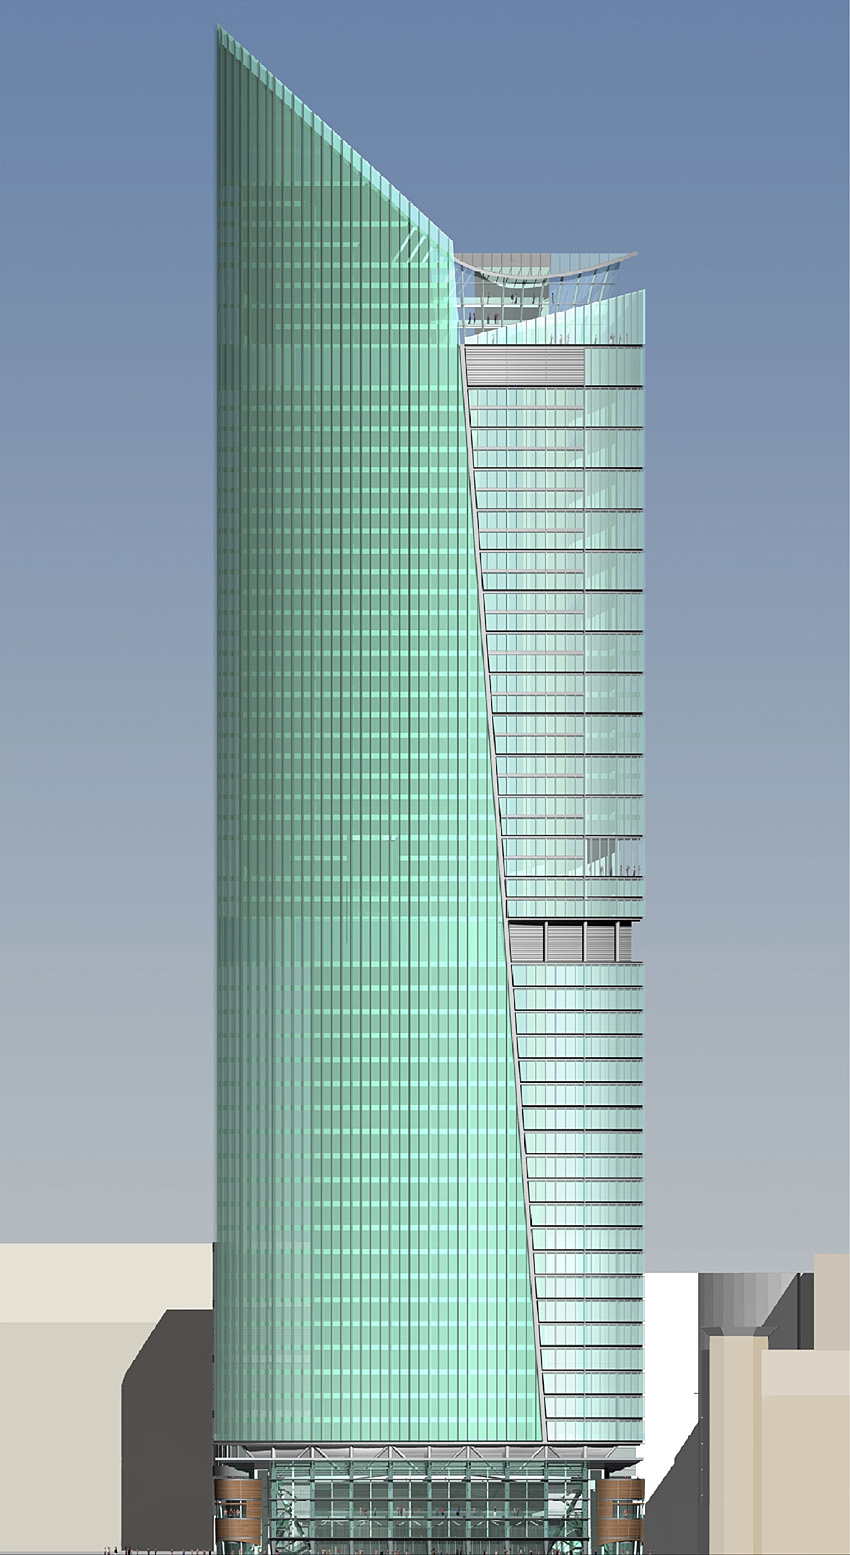 Homefront Tower Elevation : Skyscrapernews image library columbus tower